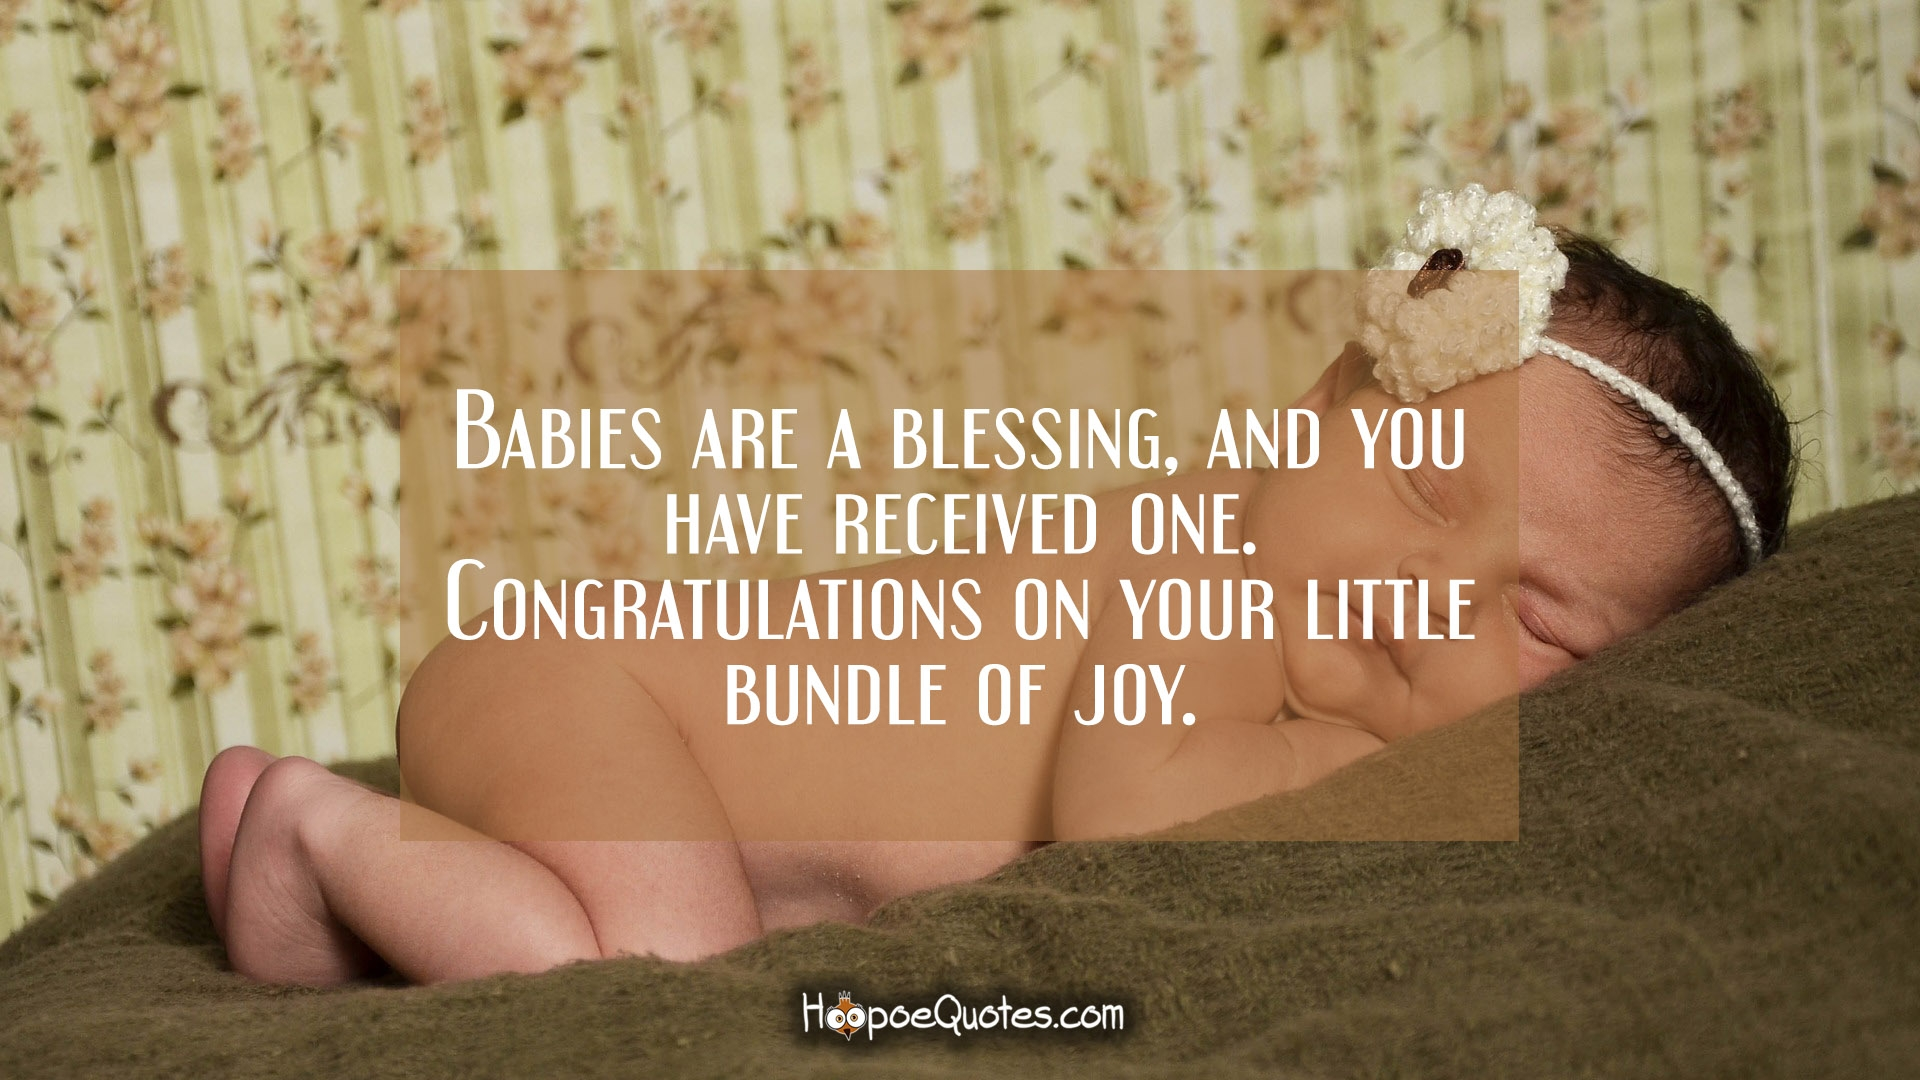 Babies Are A Blessing, And You Have Received One